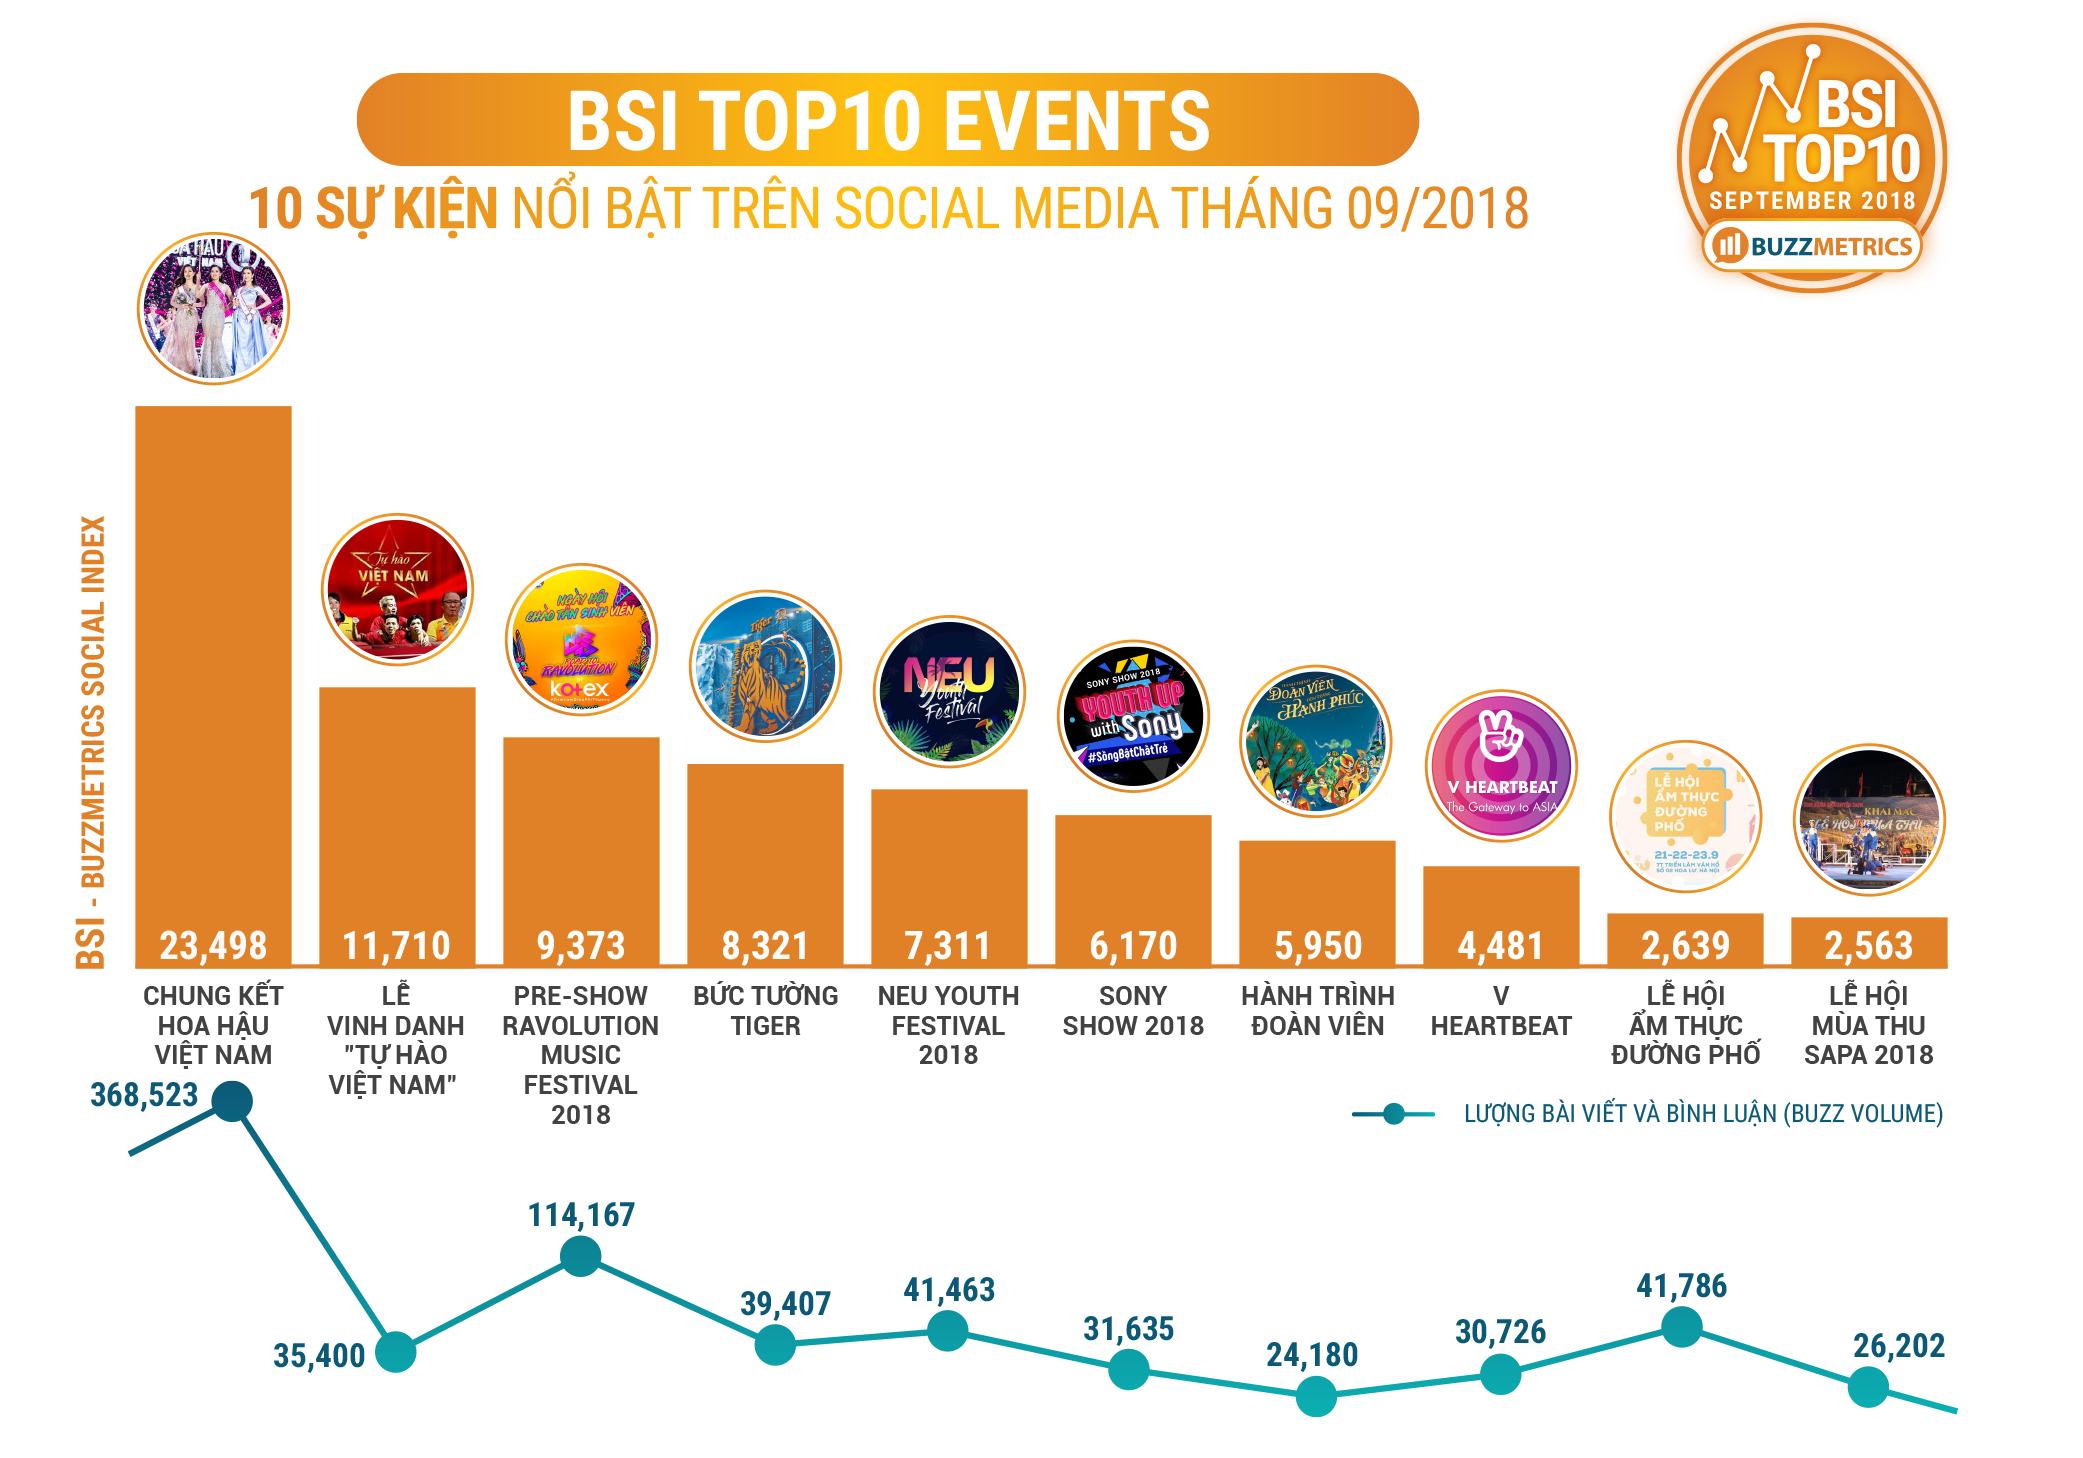 BSI Top10 Events 09/2018